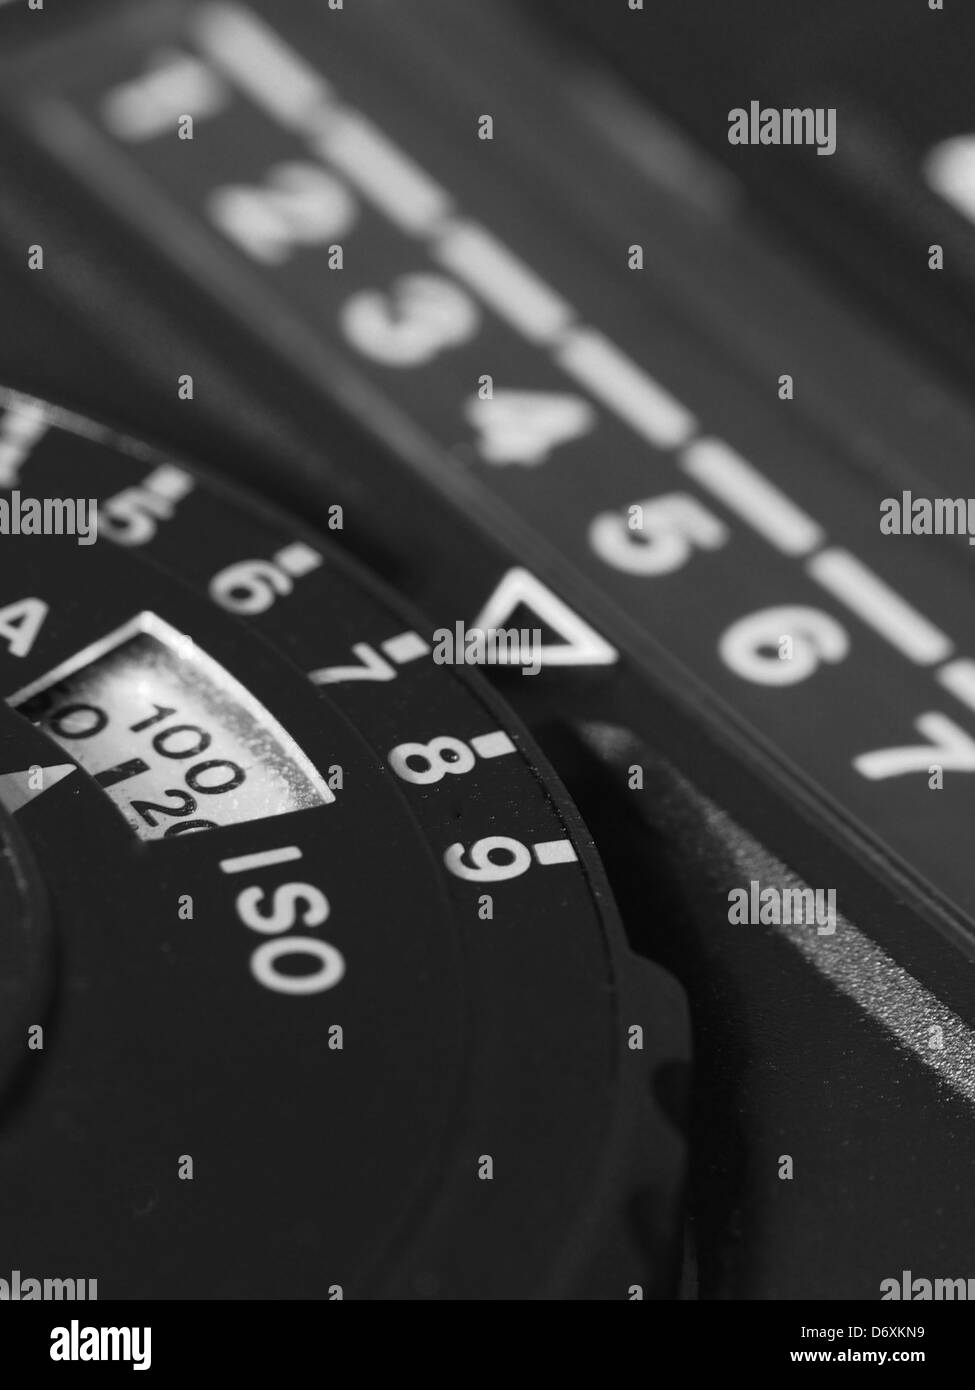 A close up of an old light meter - Stock Image